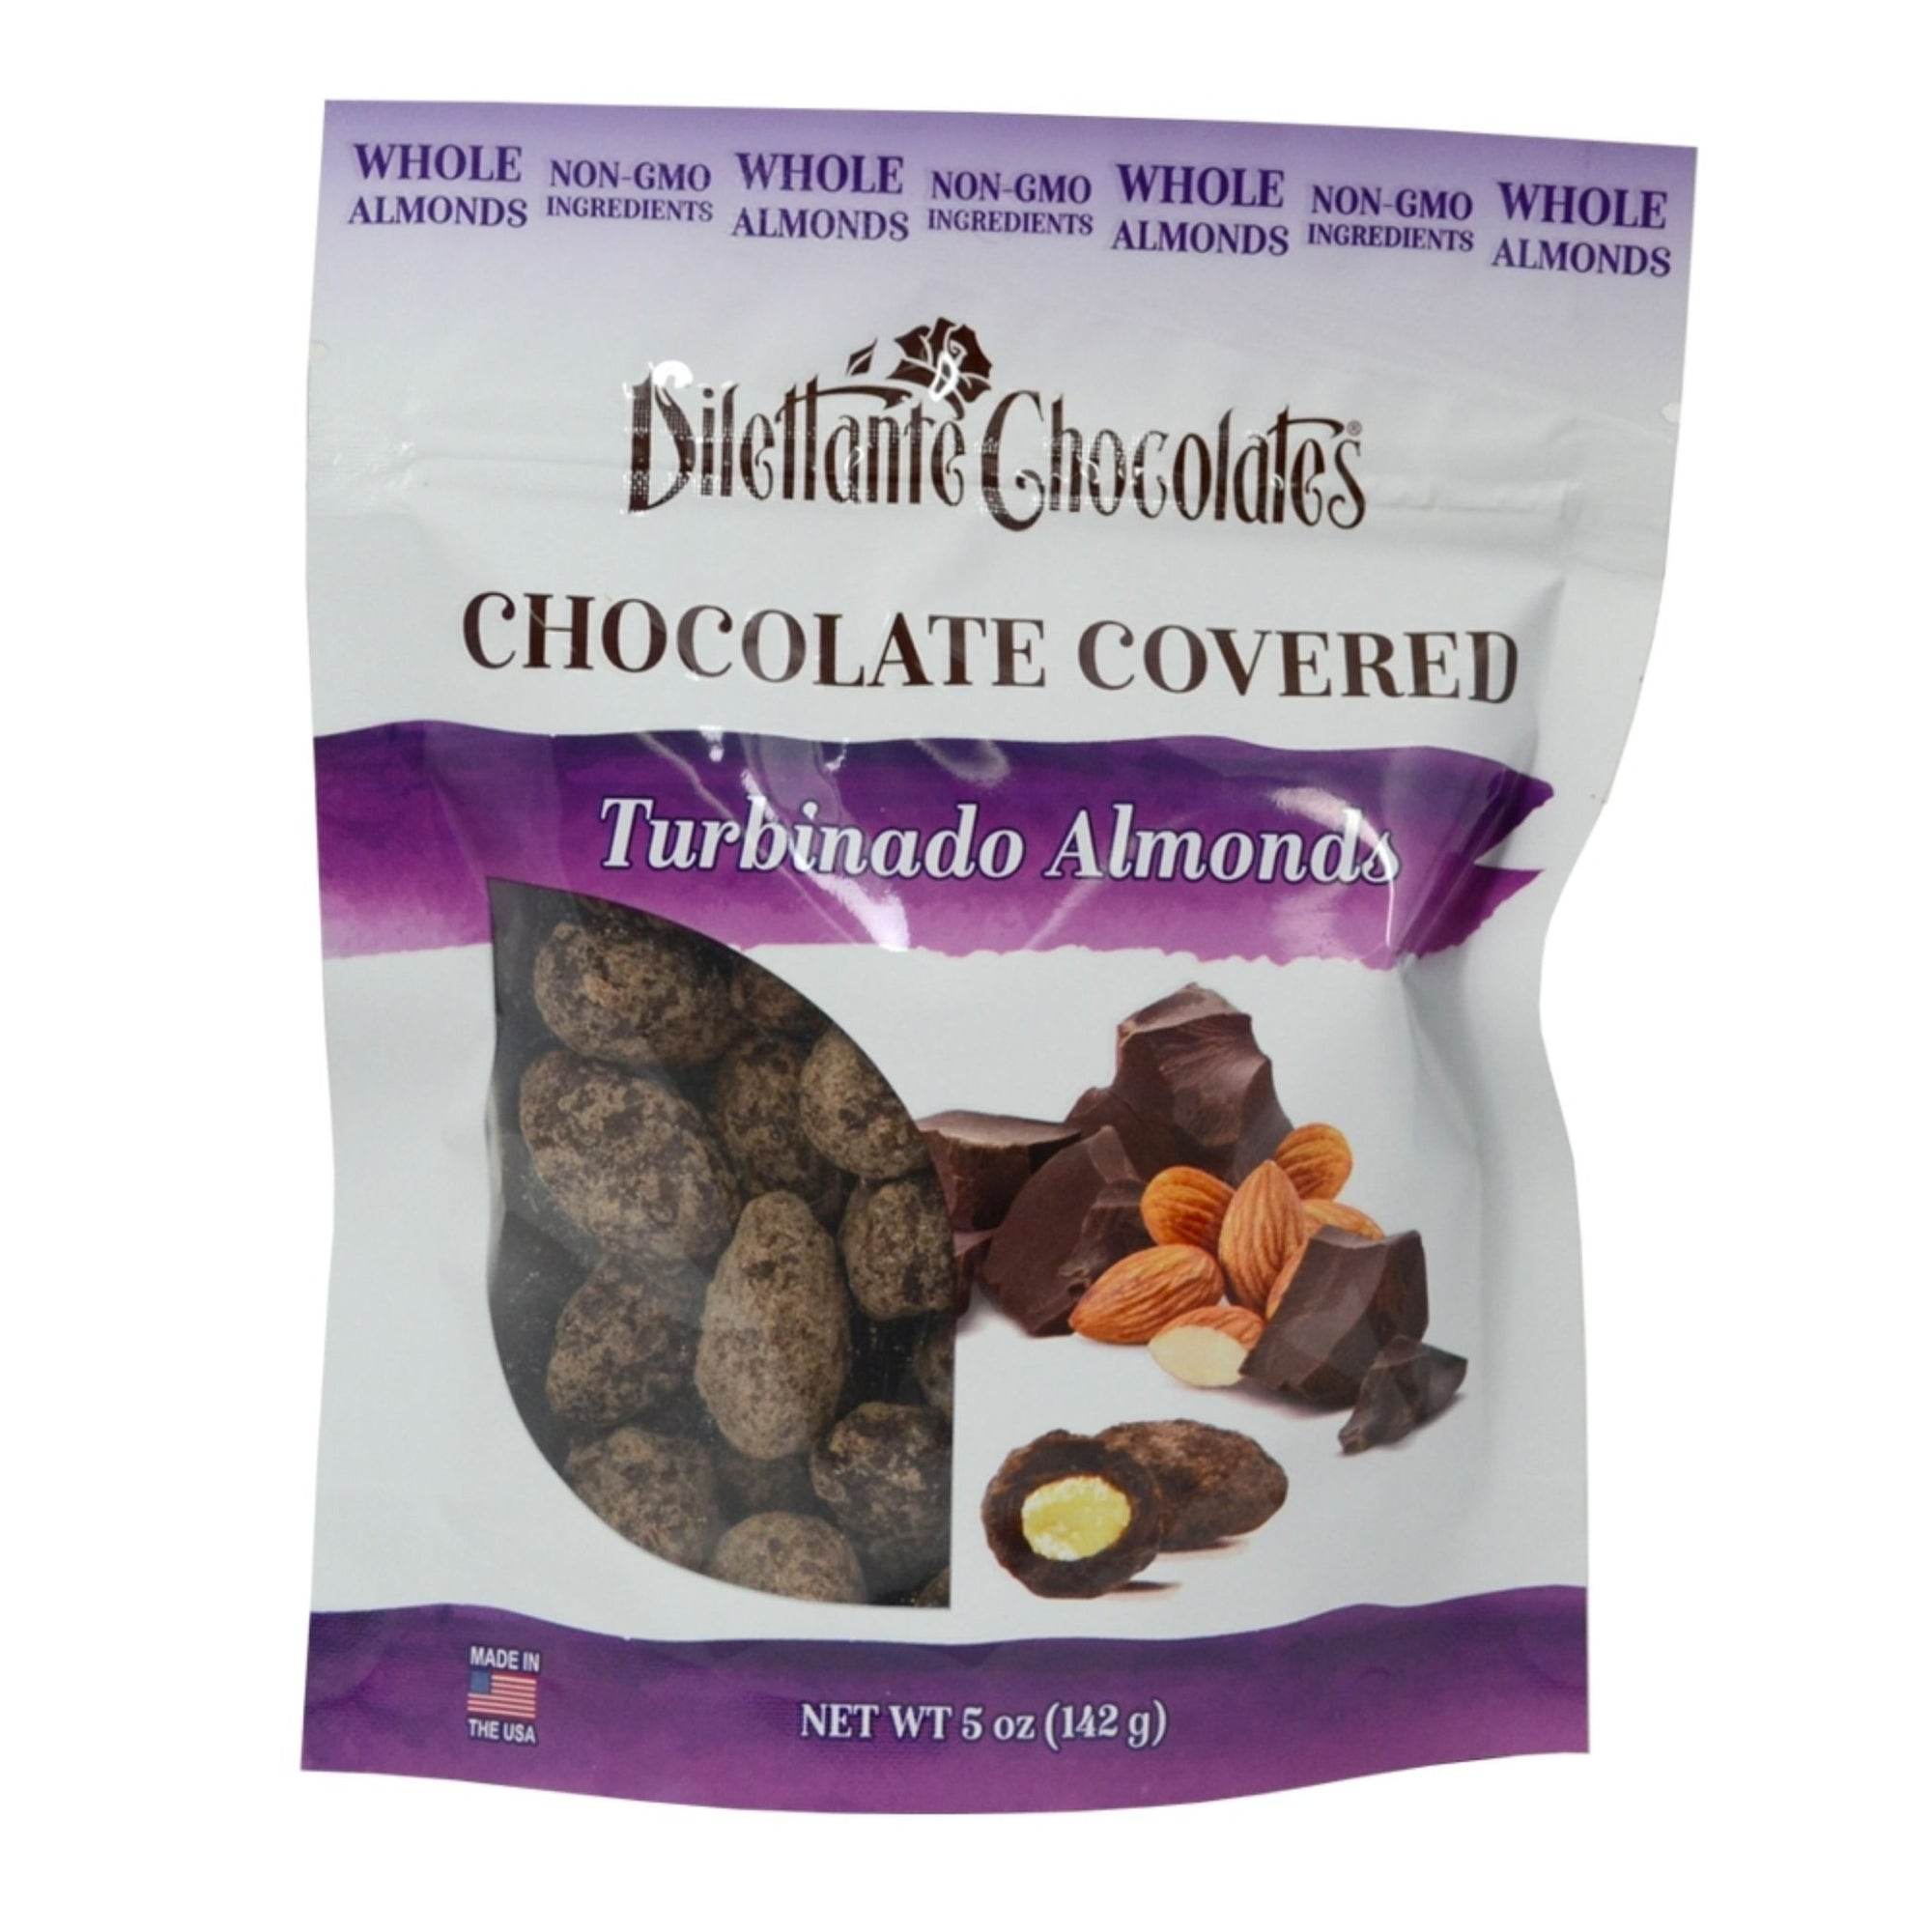 Dilettante Chocolates Chocolate-Covered Turbinado Almonds Made with Whole Almonds, Non-GMO Ingredients, and Gourmet-Quality Chocolate